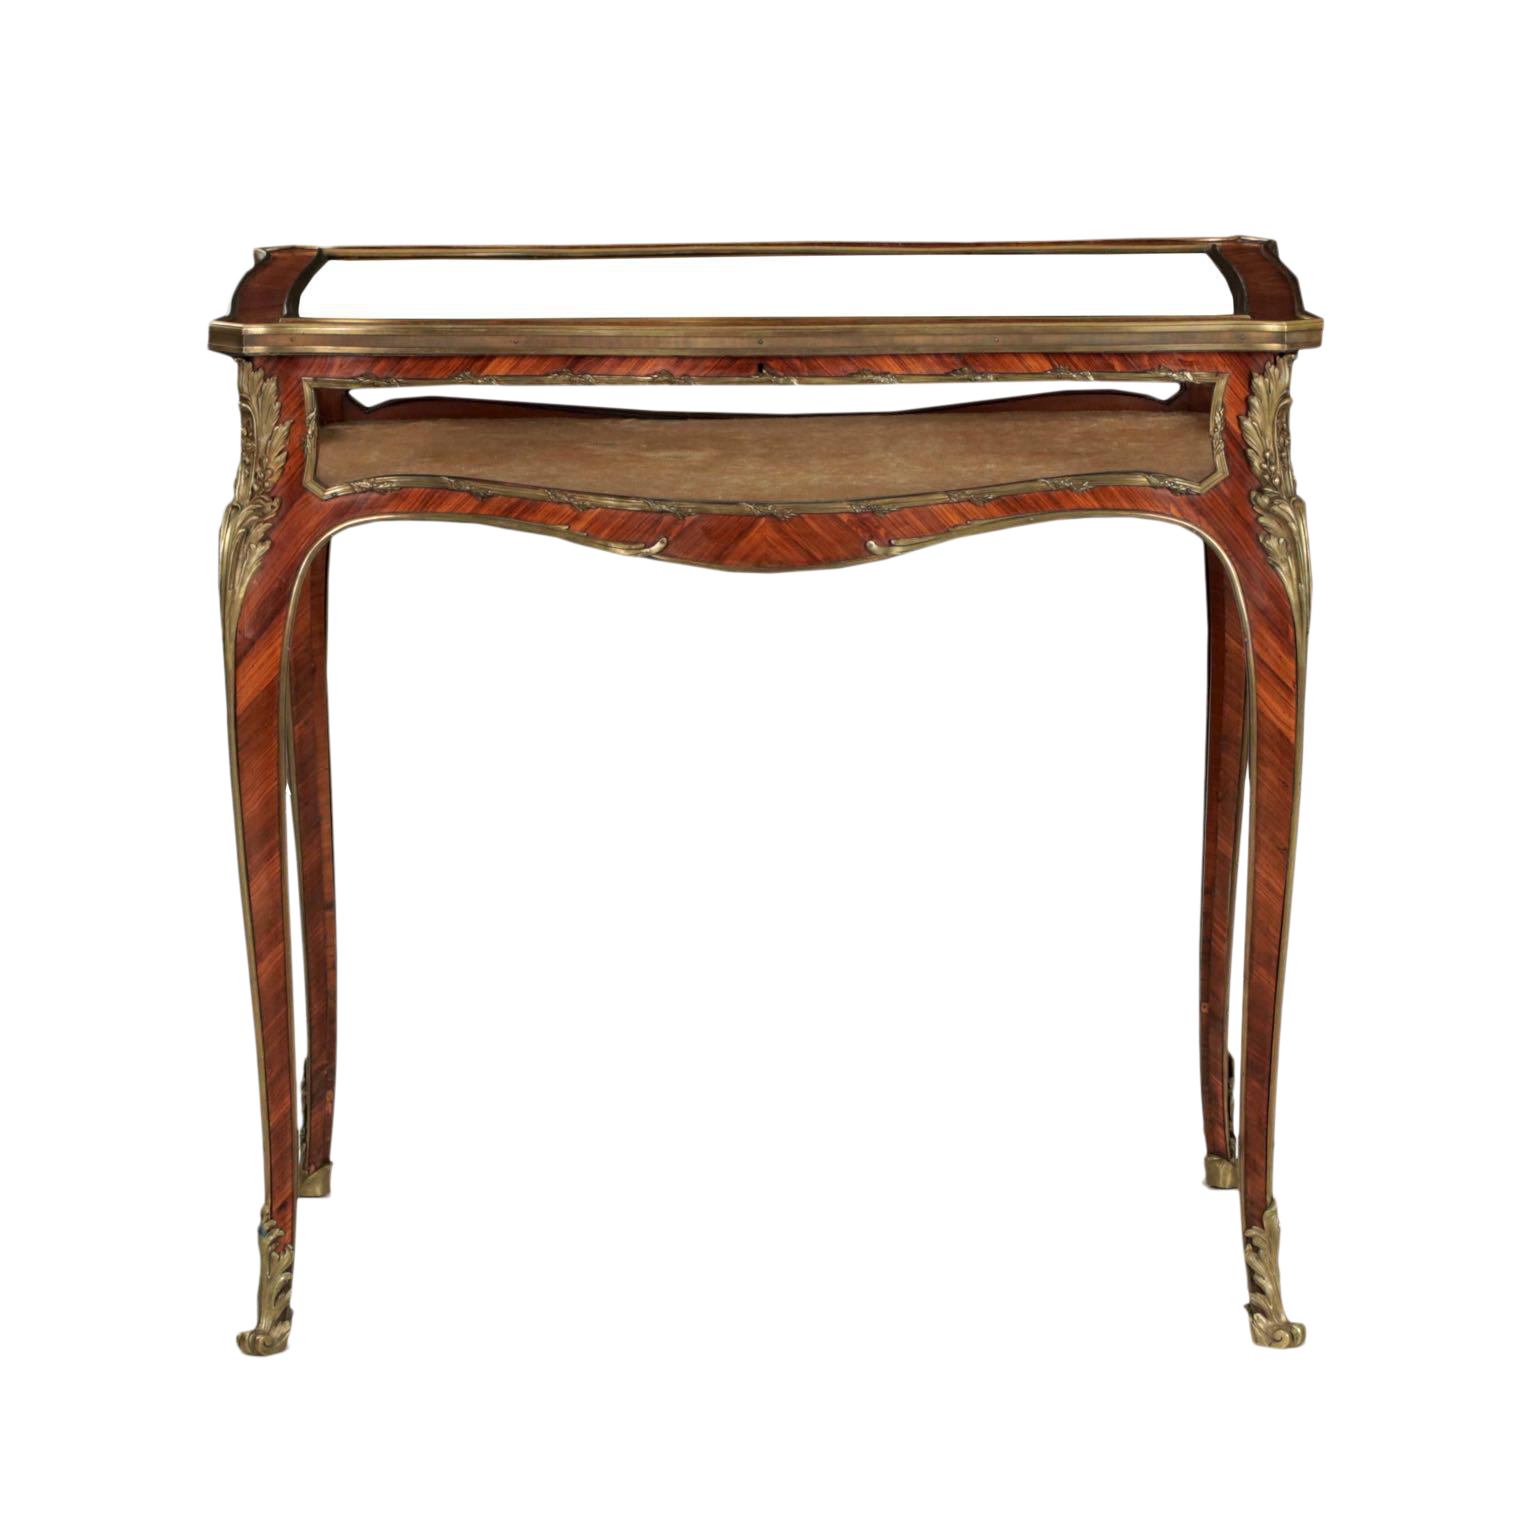 19th Century French Antique Bronze Side Table w/ Vitrine Display Case - Vintage & Used Cabinets For Sale Chairish